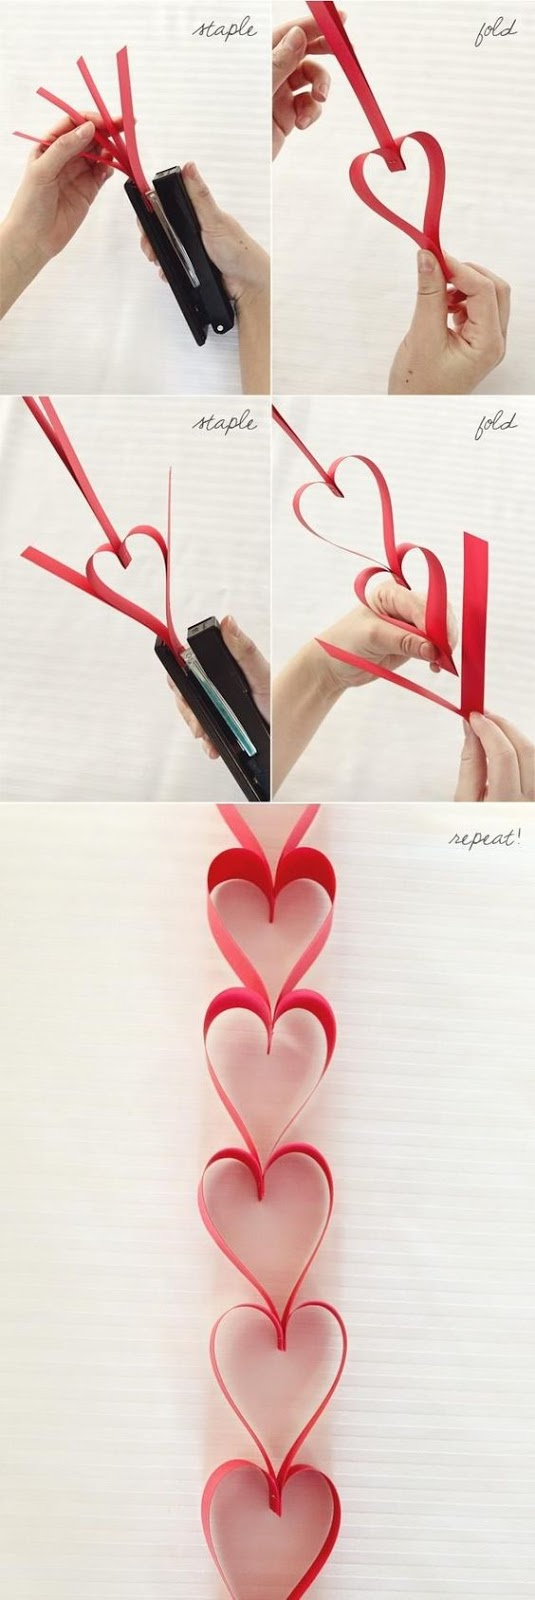 35 Charming Diy Home Decor Ideas For Valentine S Day